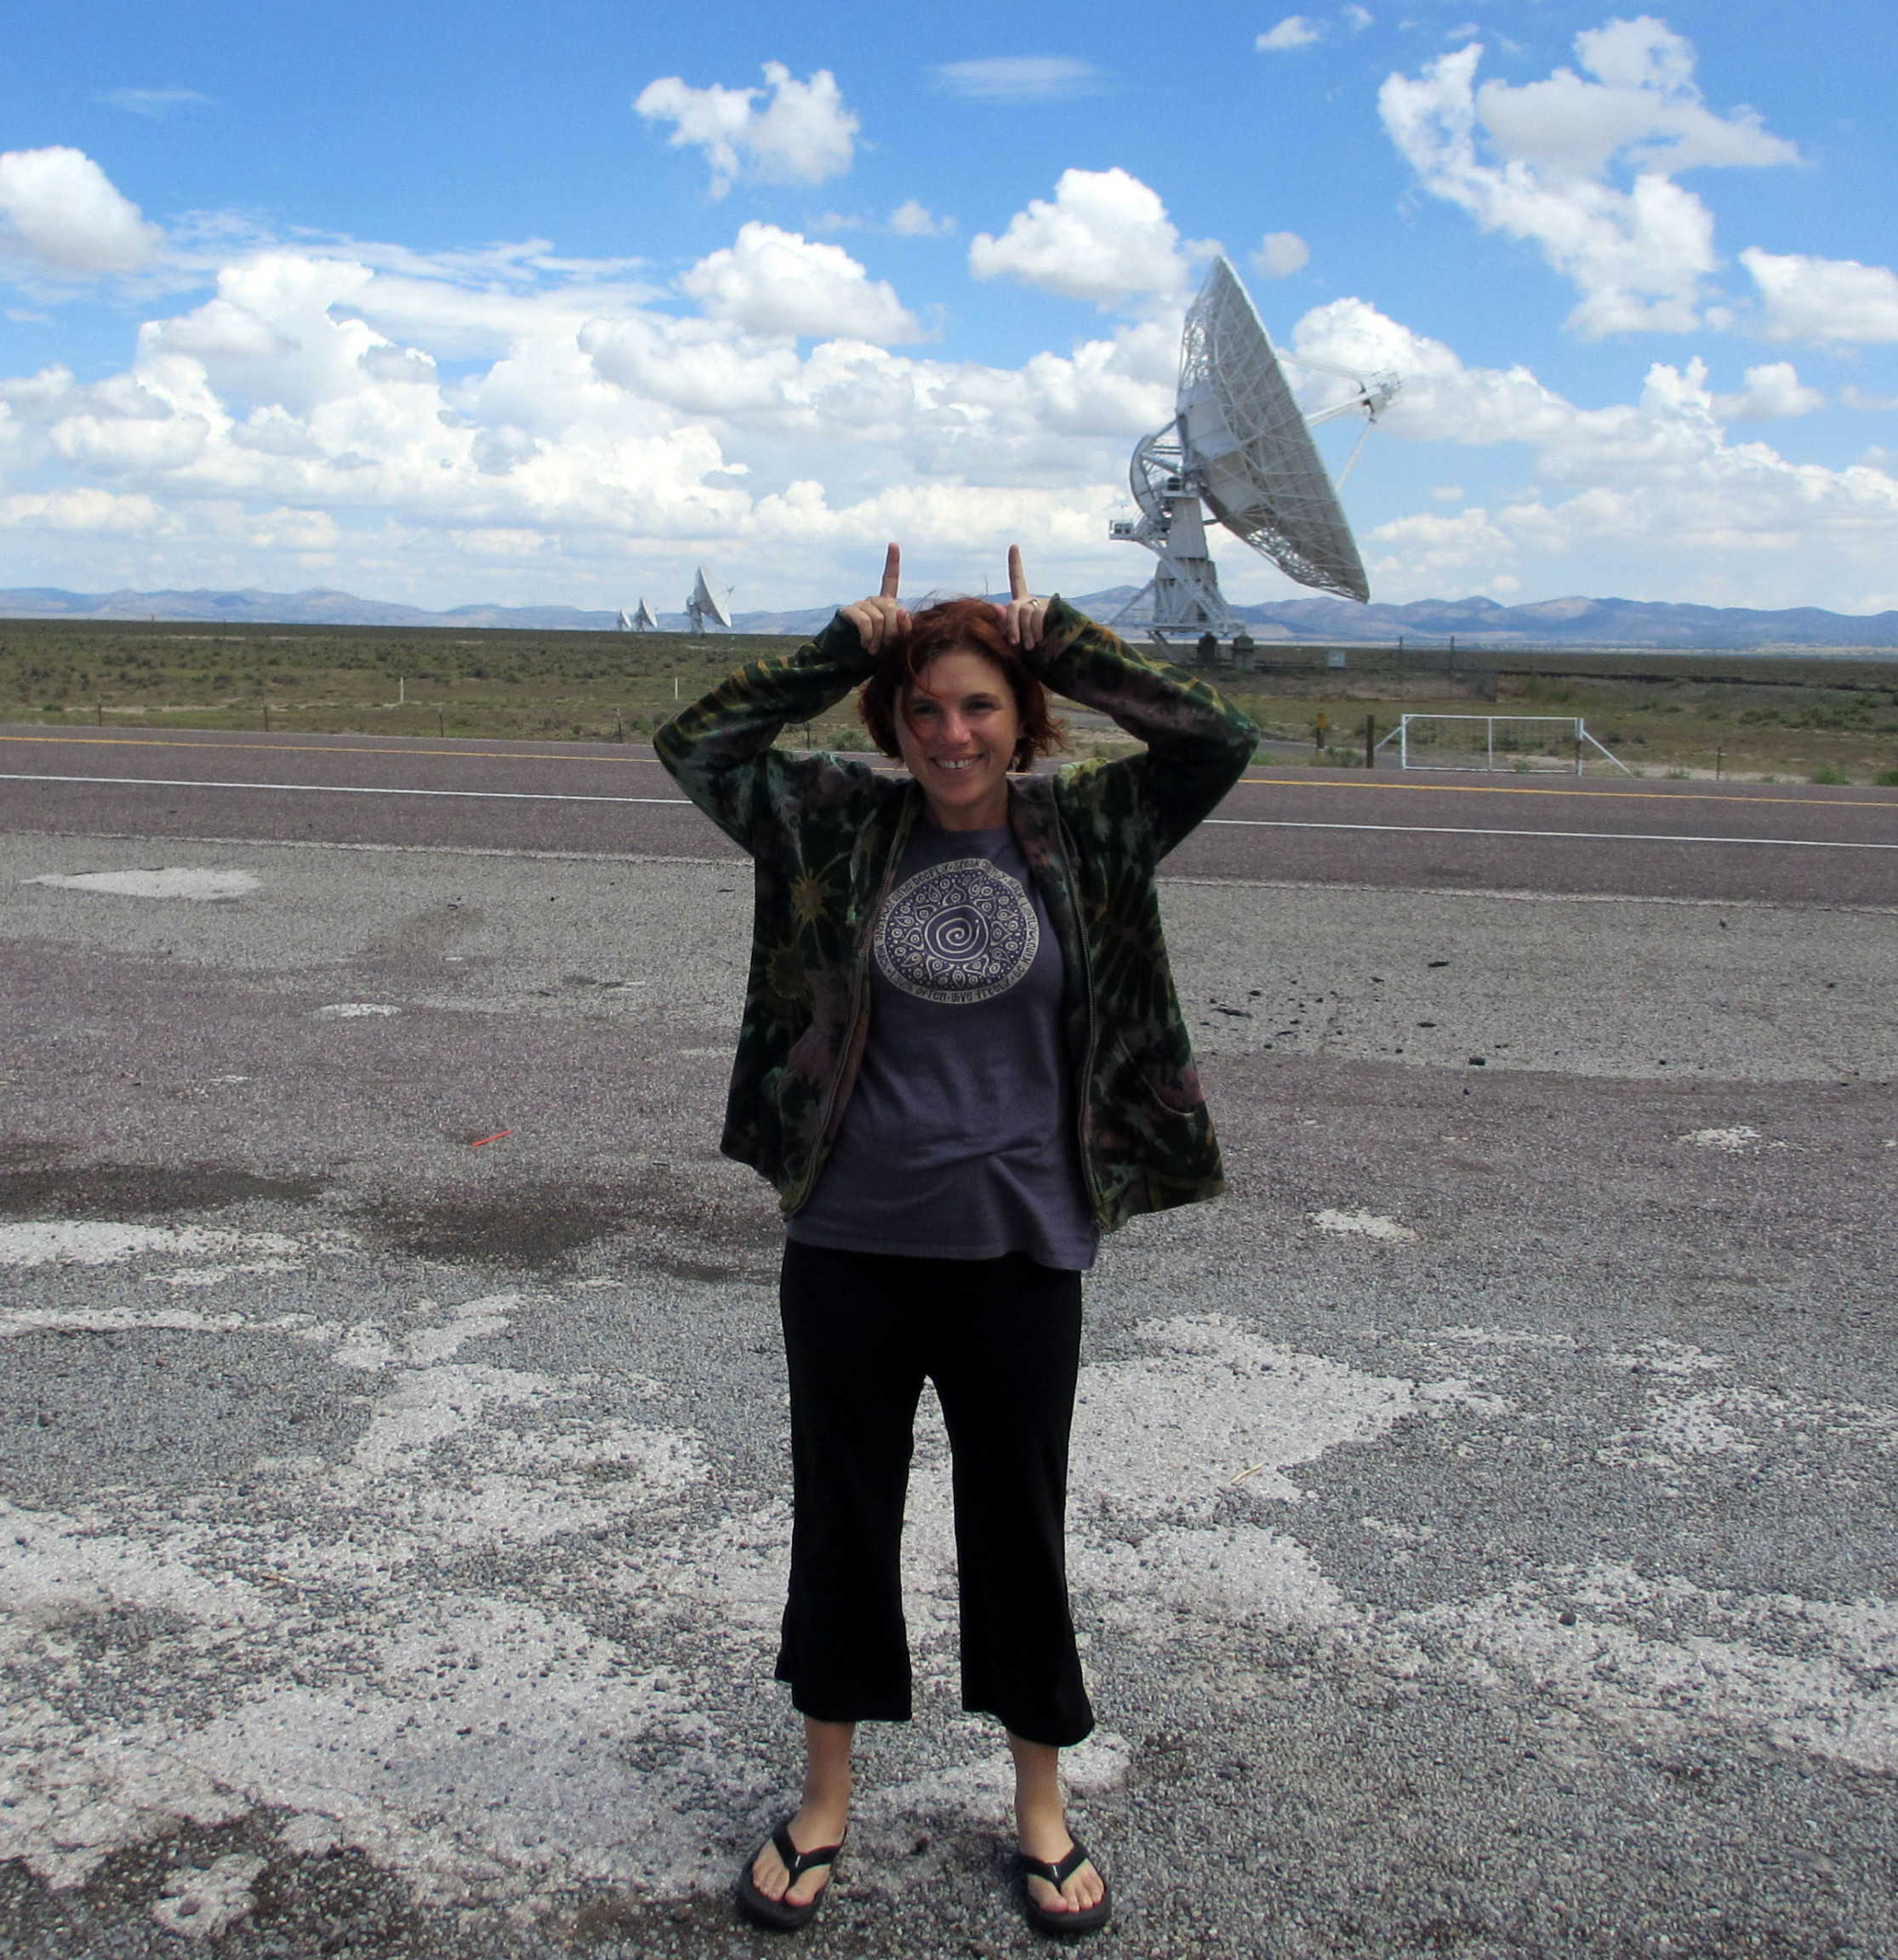 Me in New Mexico on a road with antennas in the background.